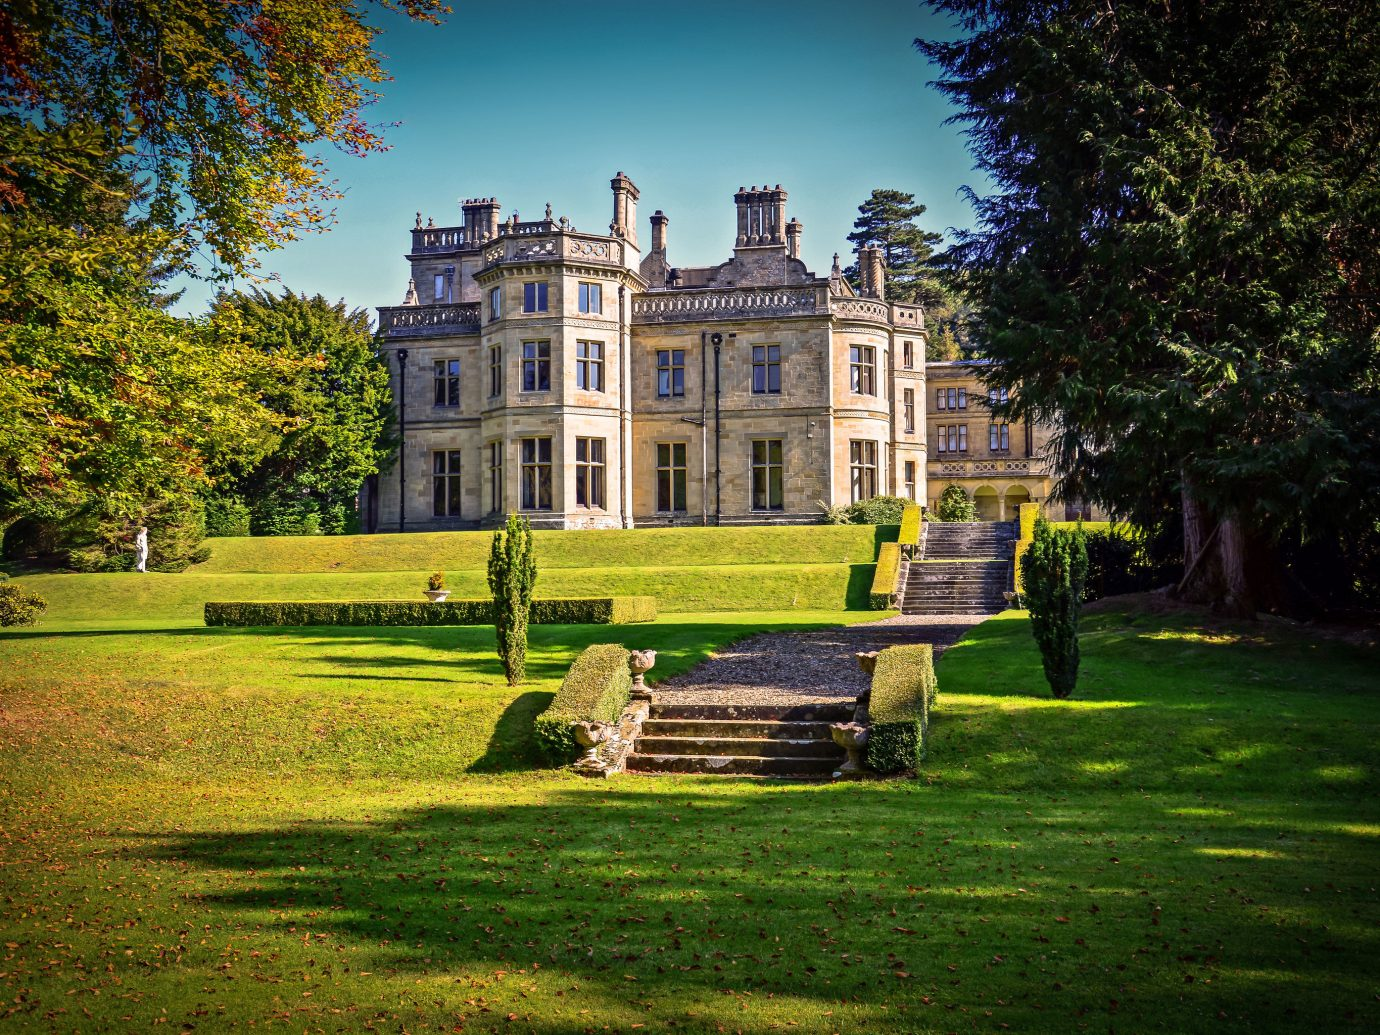 Trip Ideas grass tree outdoor park estate green house stately home château lawn home mansion Garden manor house rural area sunlight autumn backyard old grassy plant castle lush